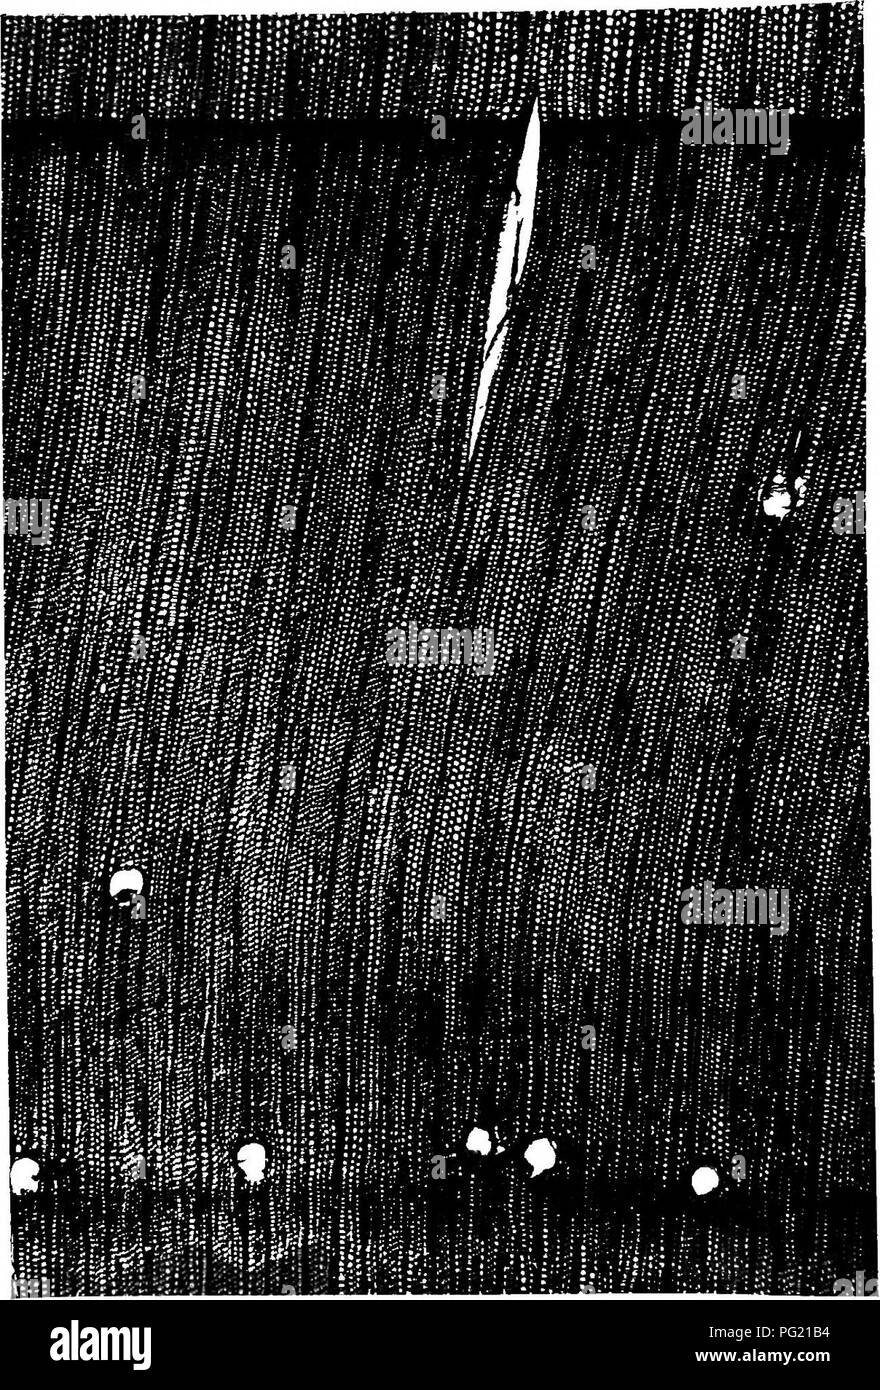 . Familiar trees. Trees. TRANSVERSE SECTION OF WOOD OF STONE PINE IX 30 DIAMETERS).. Please note that these images are extracted from scanned page images that may have been digitally enhanced for readability - coloration and appearance of these illustrations may not perfectly resemble the original work.. Boulger, George Simonds, 1853-1922. London, New York, Cassell - Stock Image